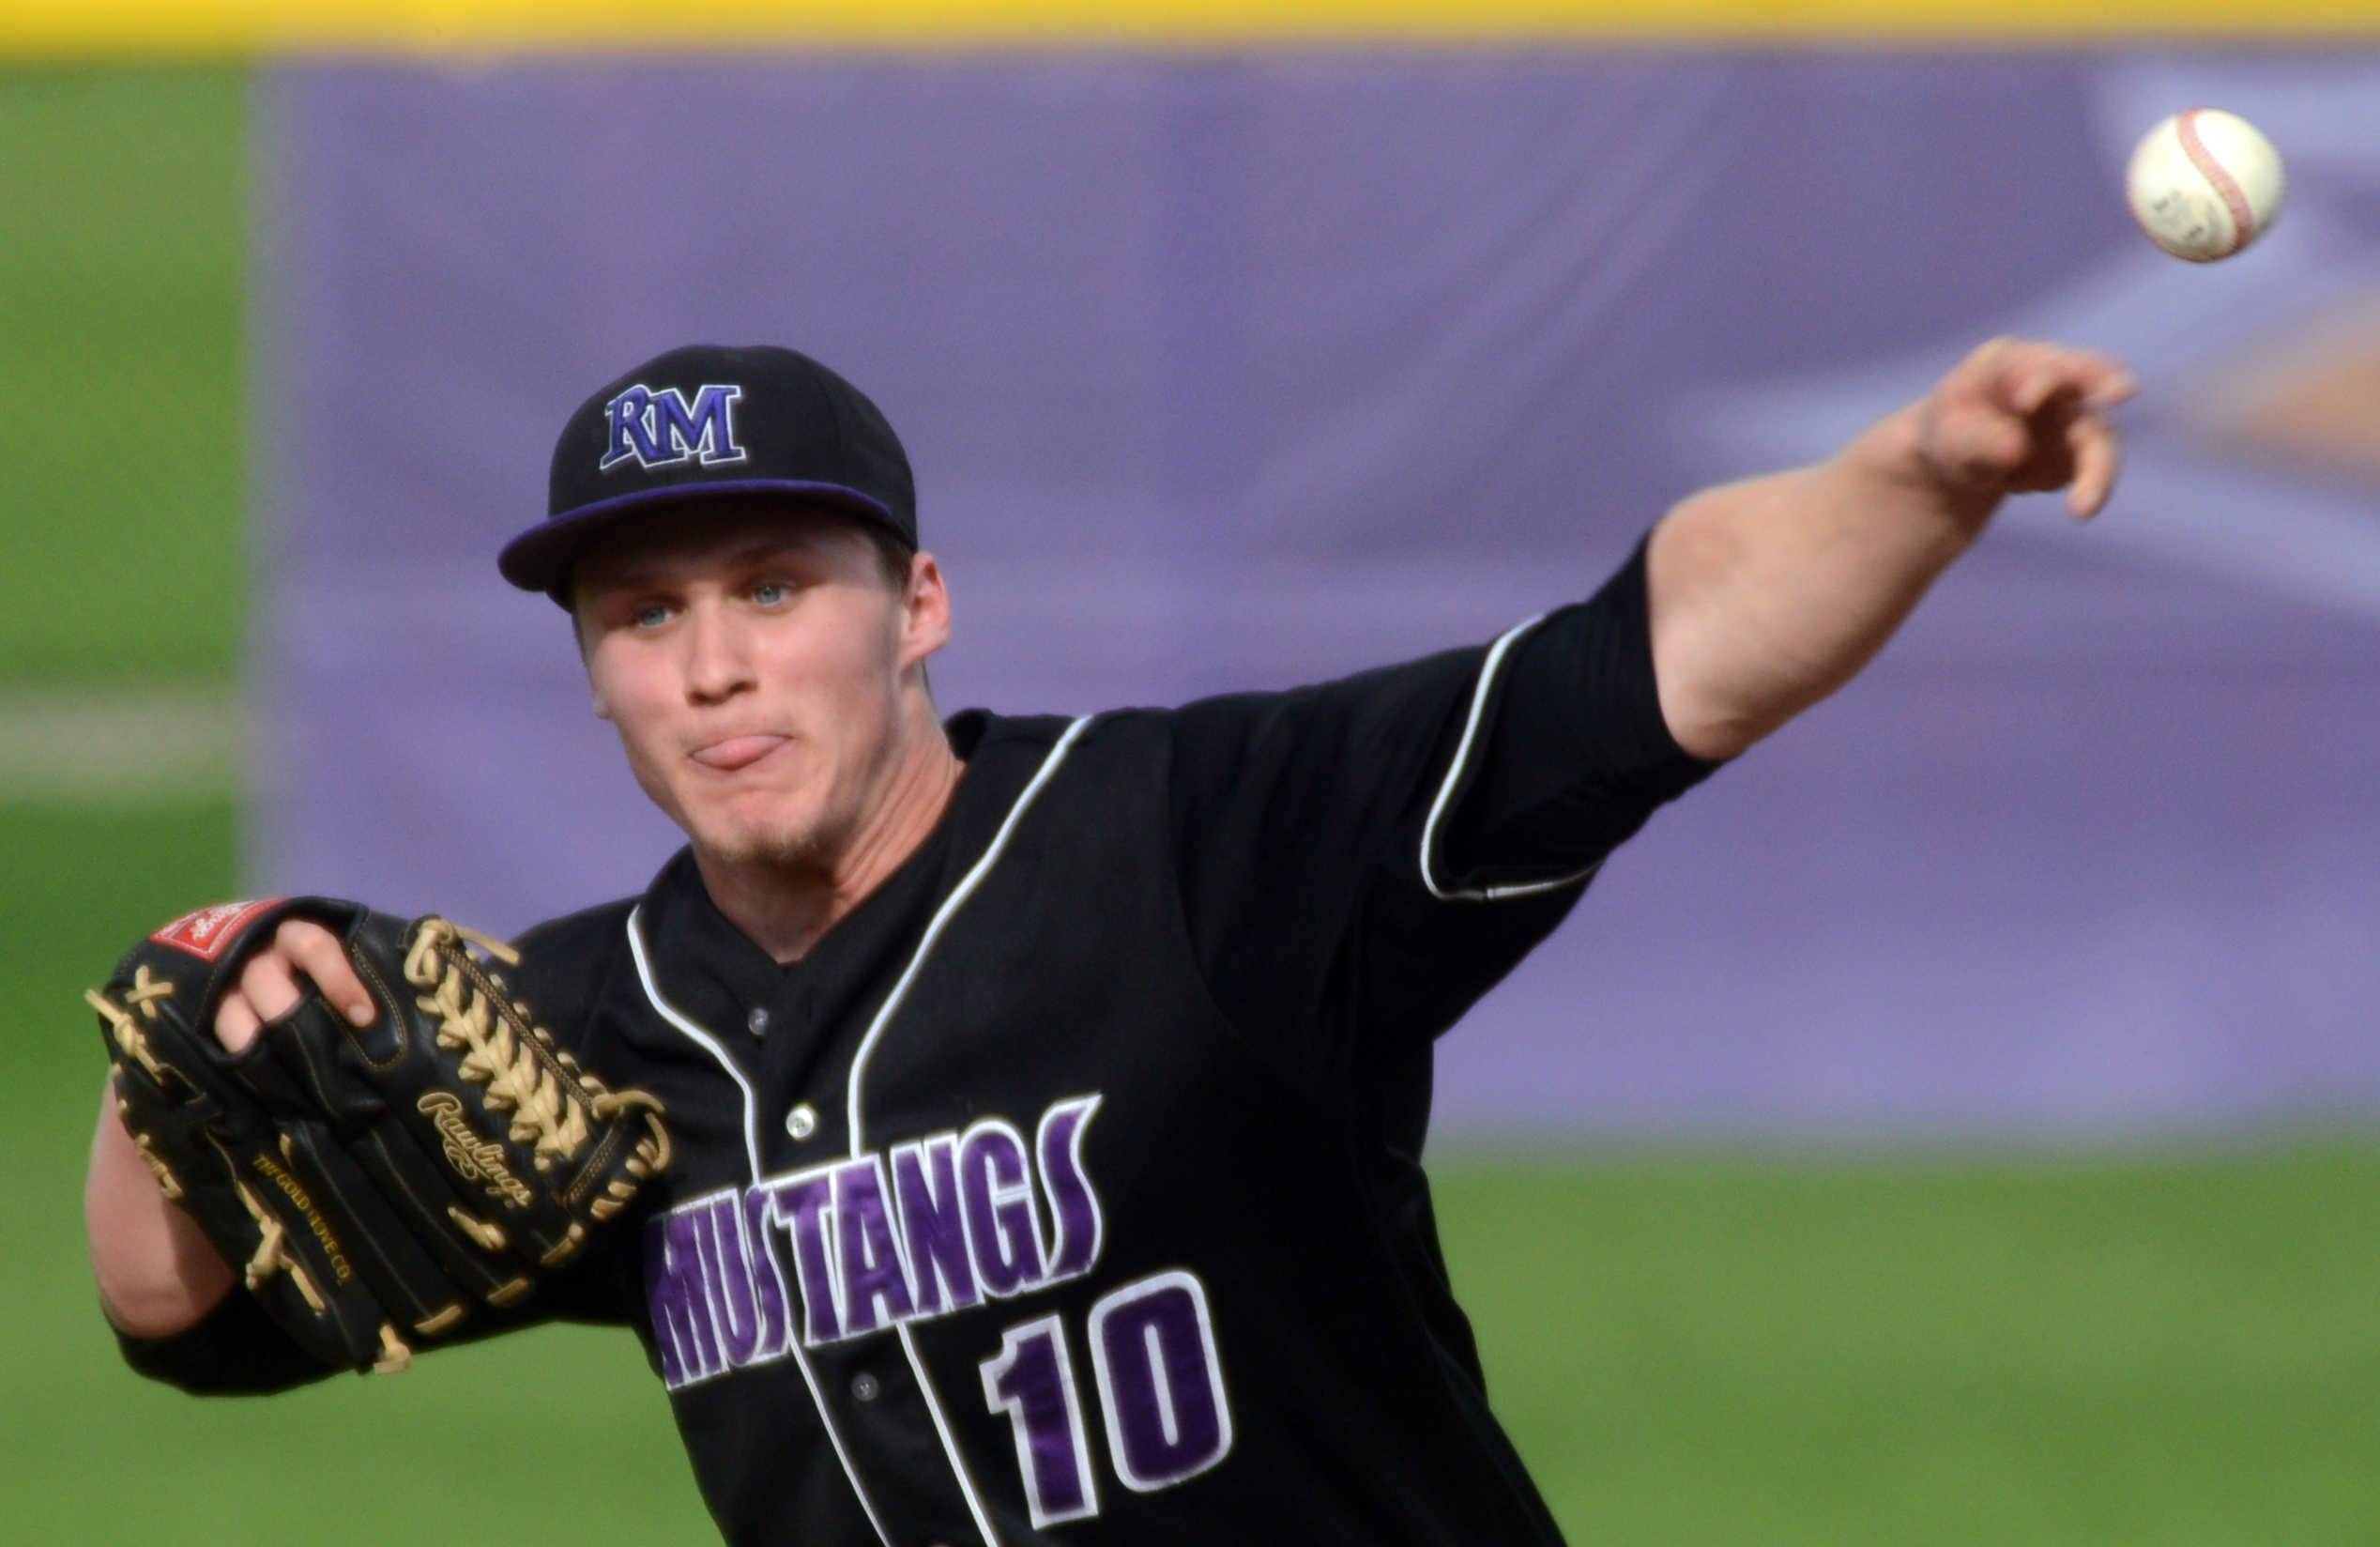 Rolling Meadows pitcher Erik Schurtz delivers against Elk Grove in Rolling Meadows on Monday night.